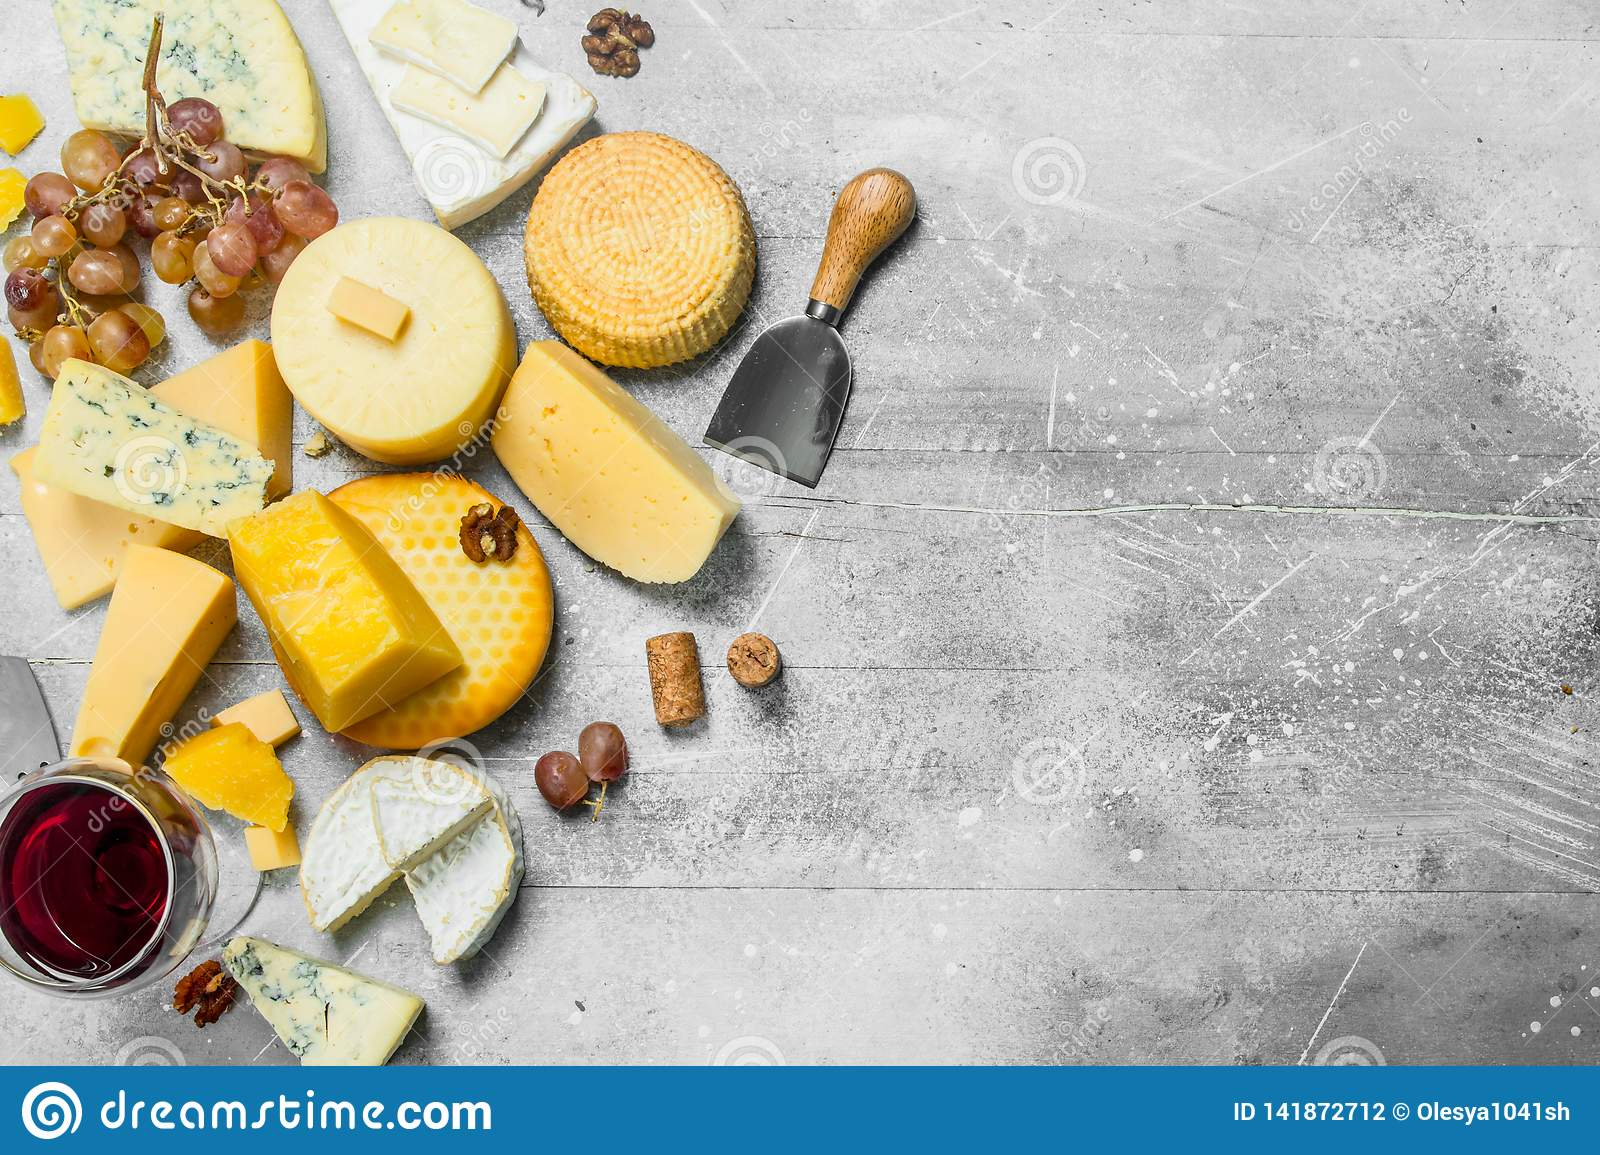 Different types of cheese with grapes, nuts and a glass of red wine